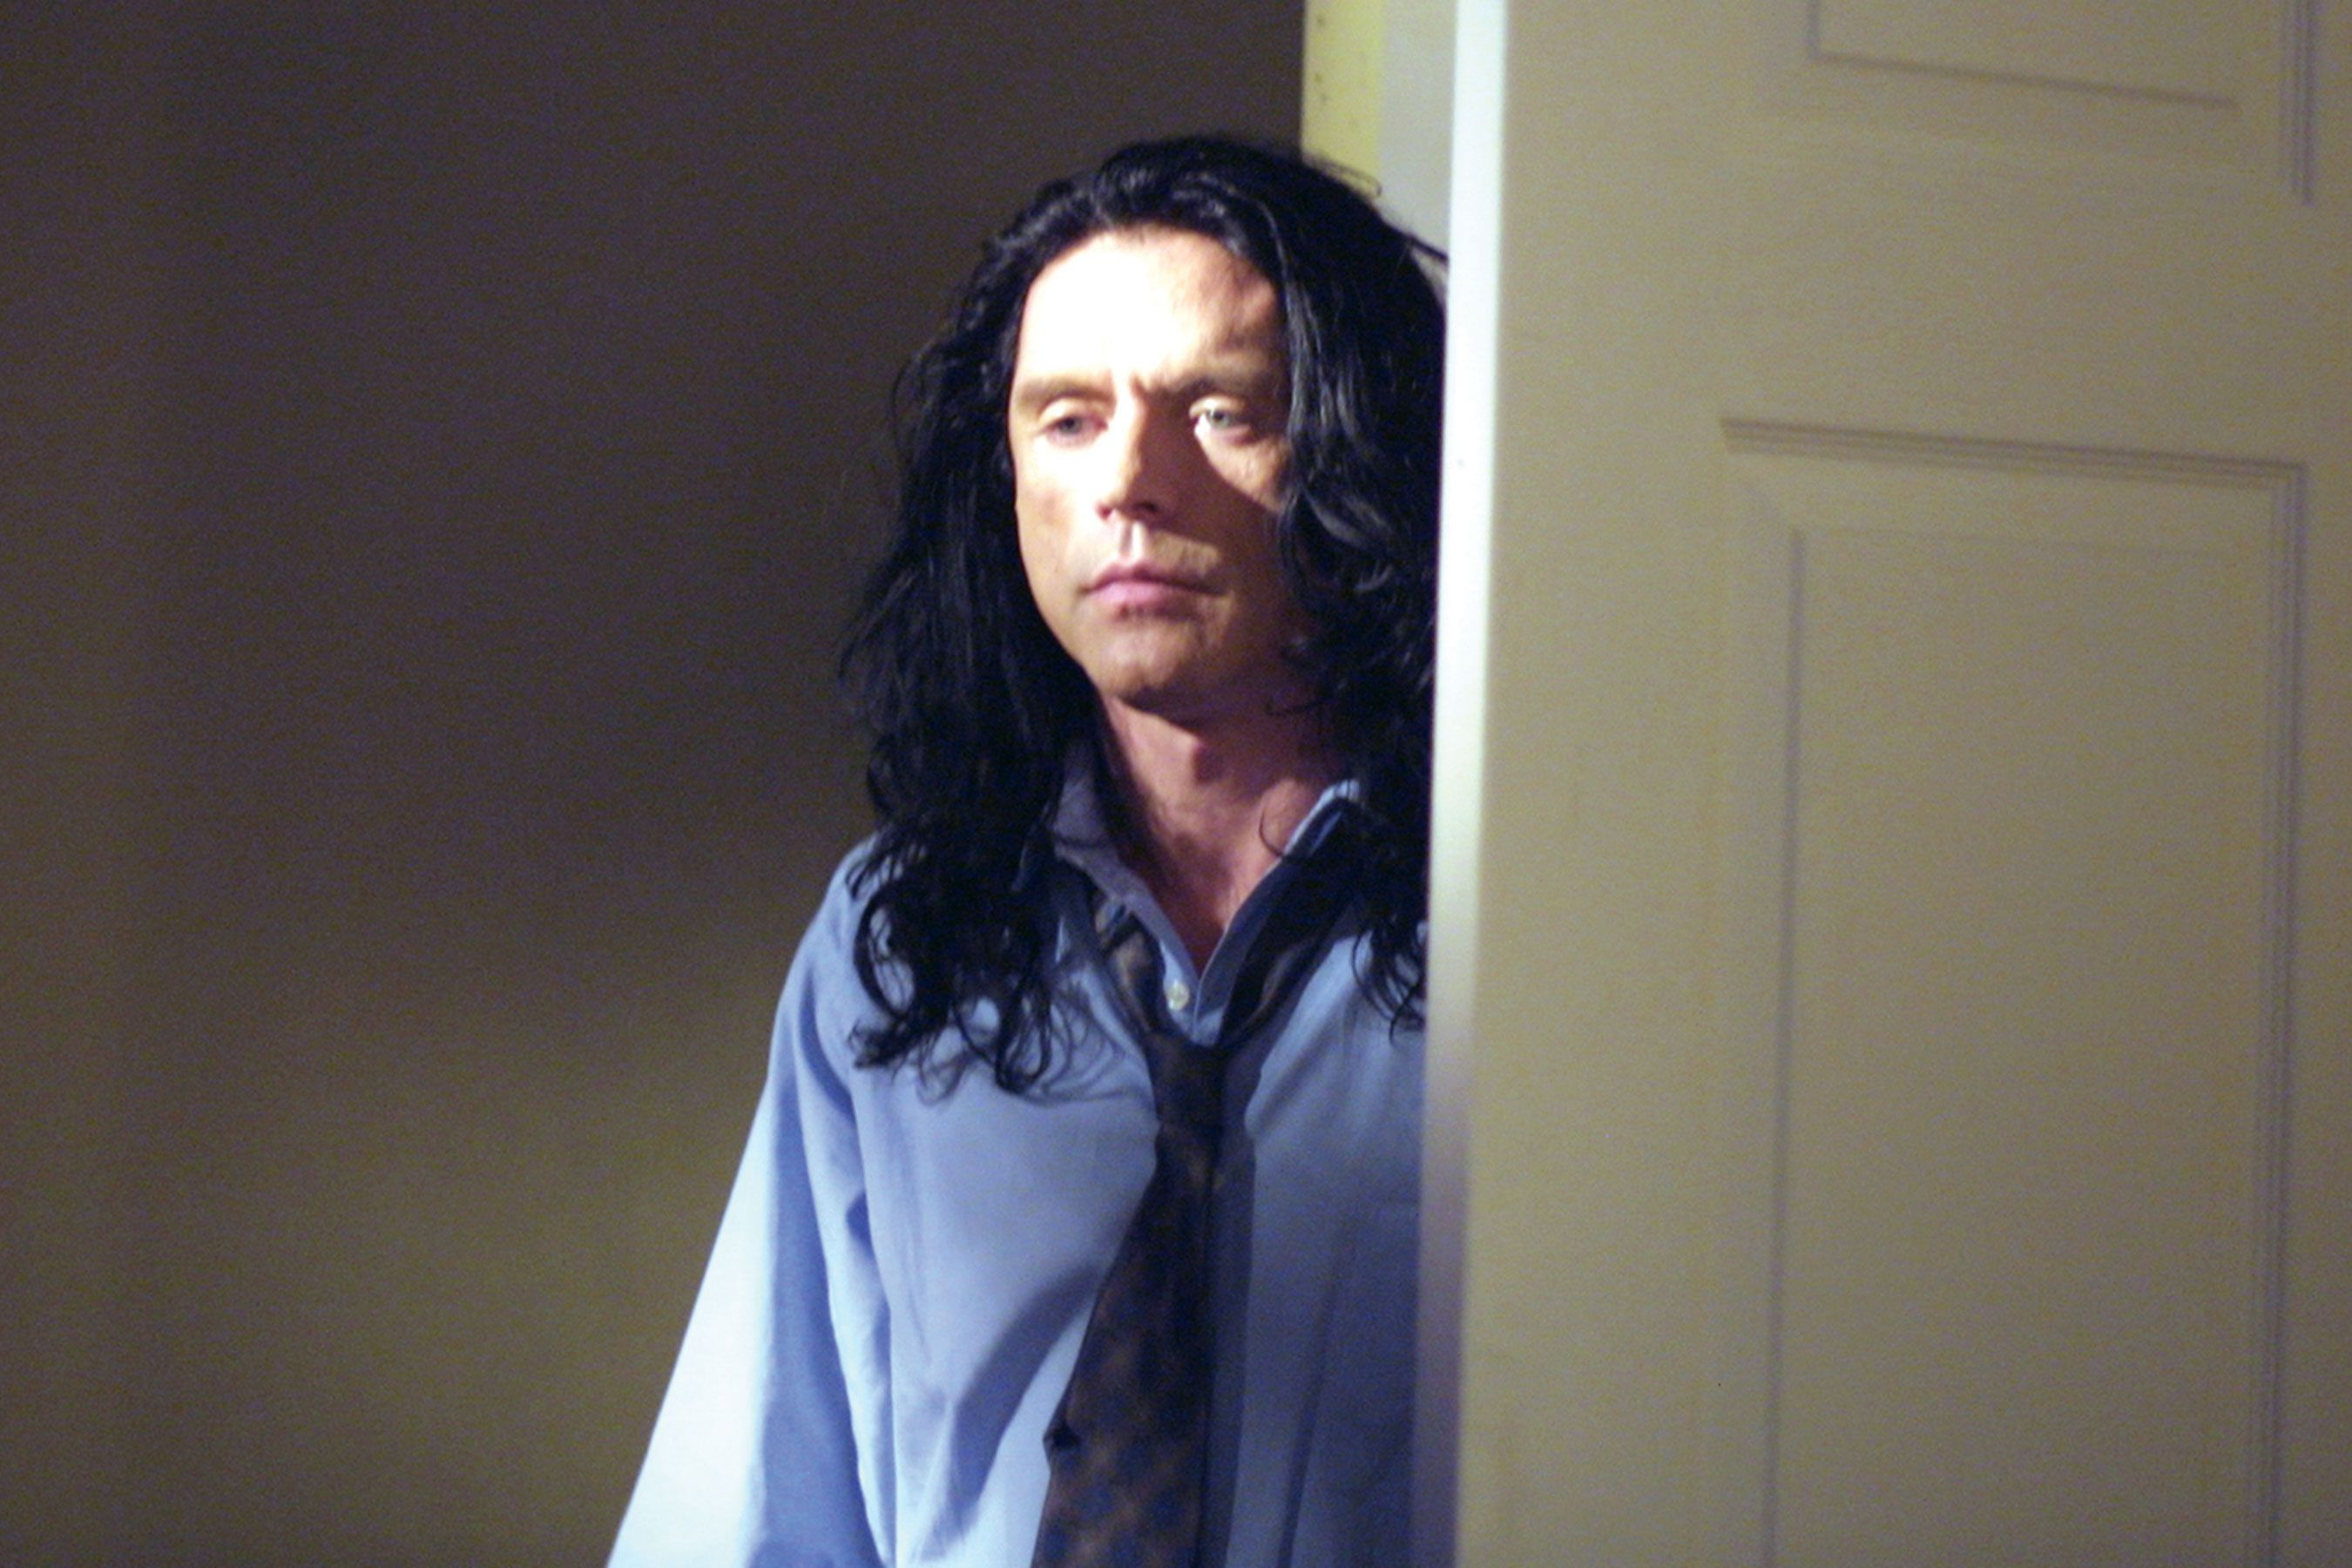 A Vintage Interview With The Room Creator Tommy Wiseau Believe In What You Believe Tommy Spoofs Greg Sestero